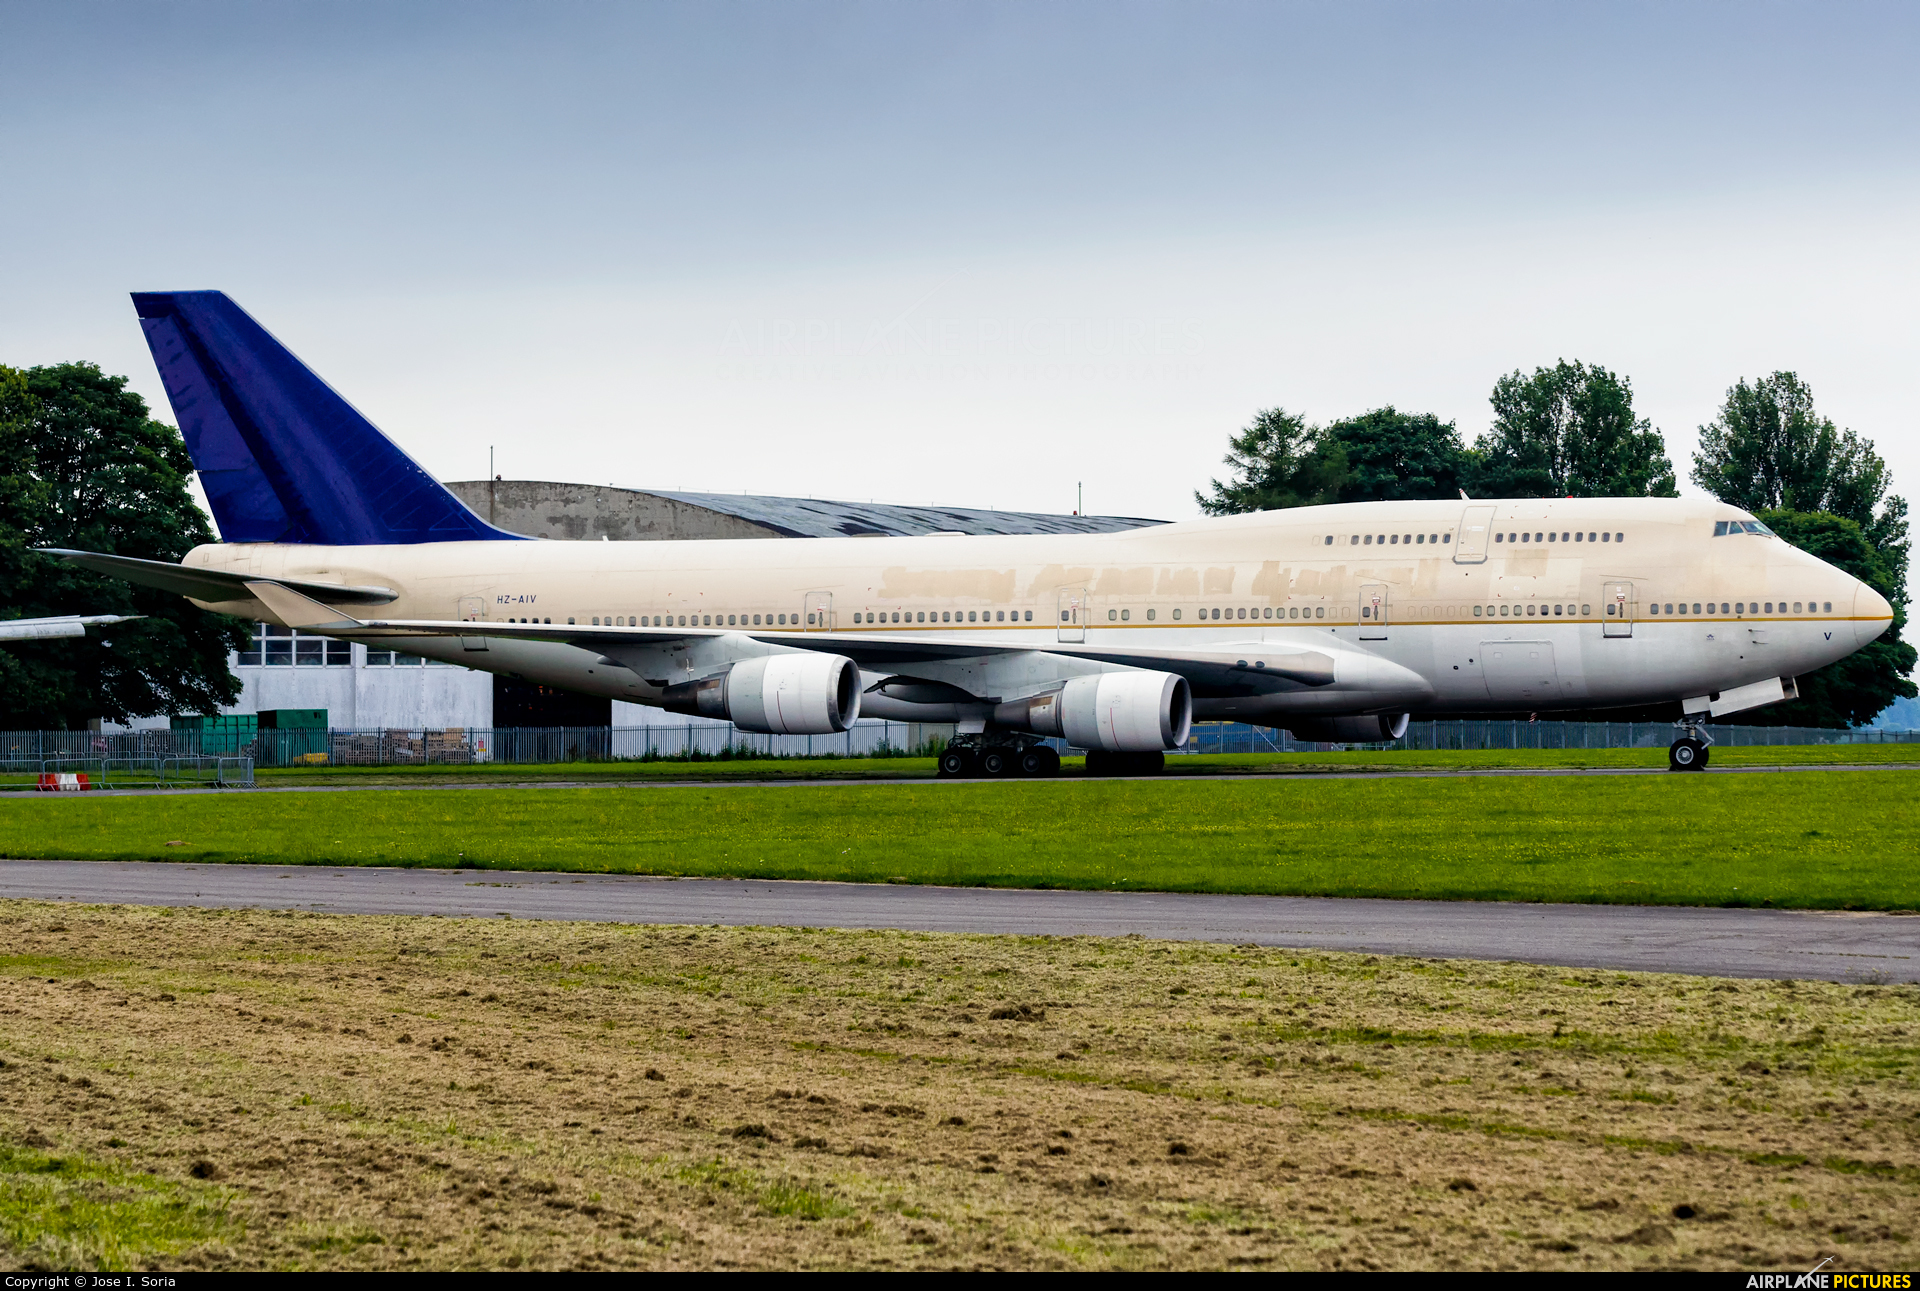 Saudi Arabian Airlines HZ-AIV aircraft at Kemble